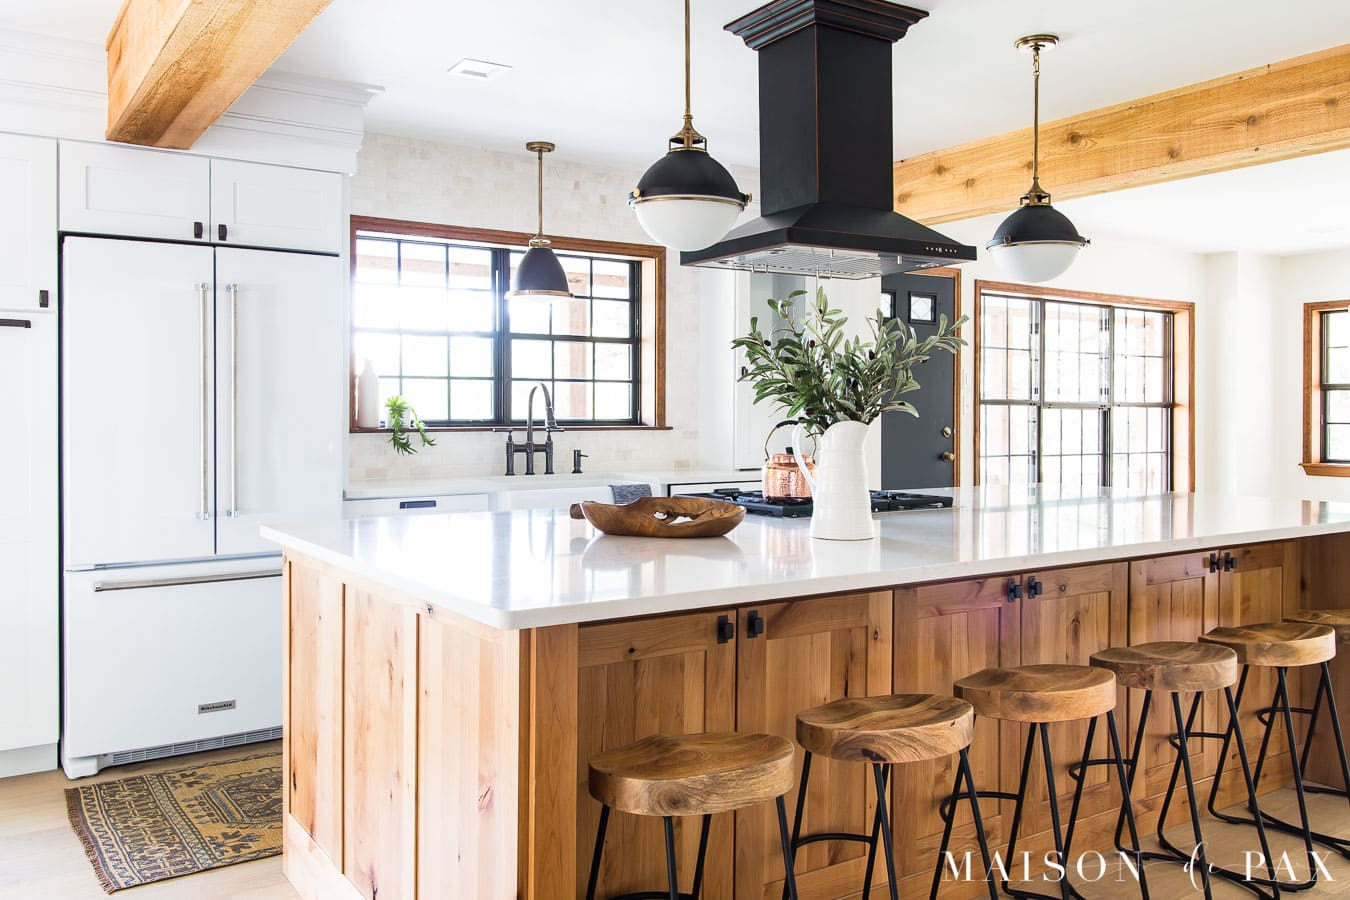 giant wood island in kitchen with barstools | Maison de Pax